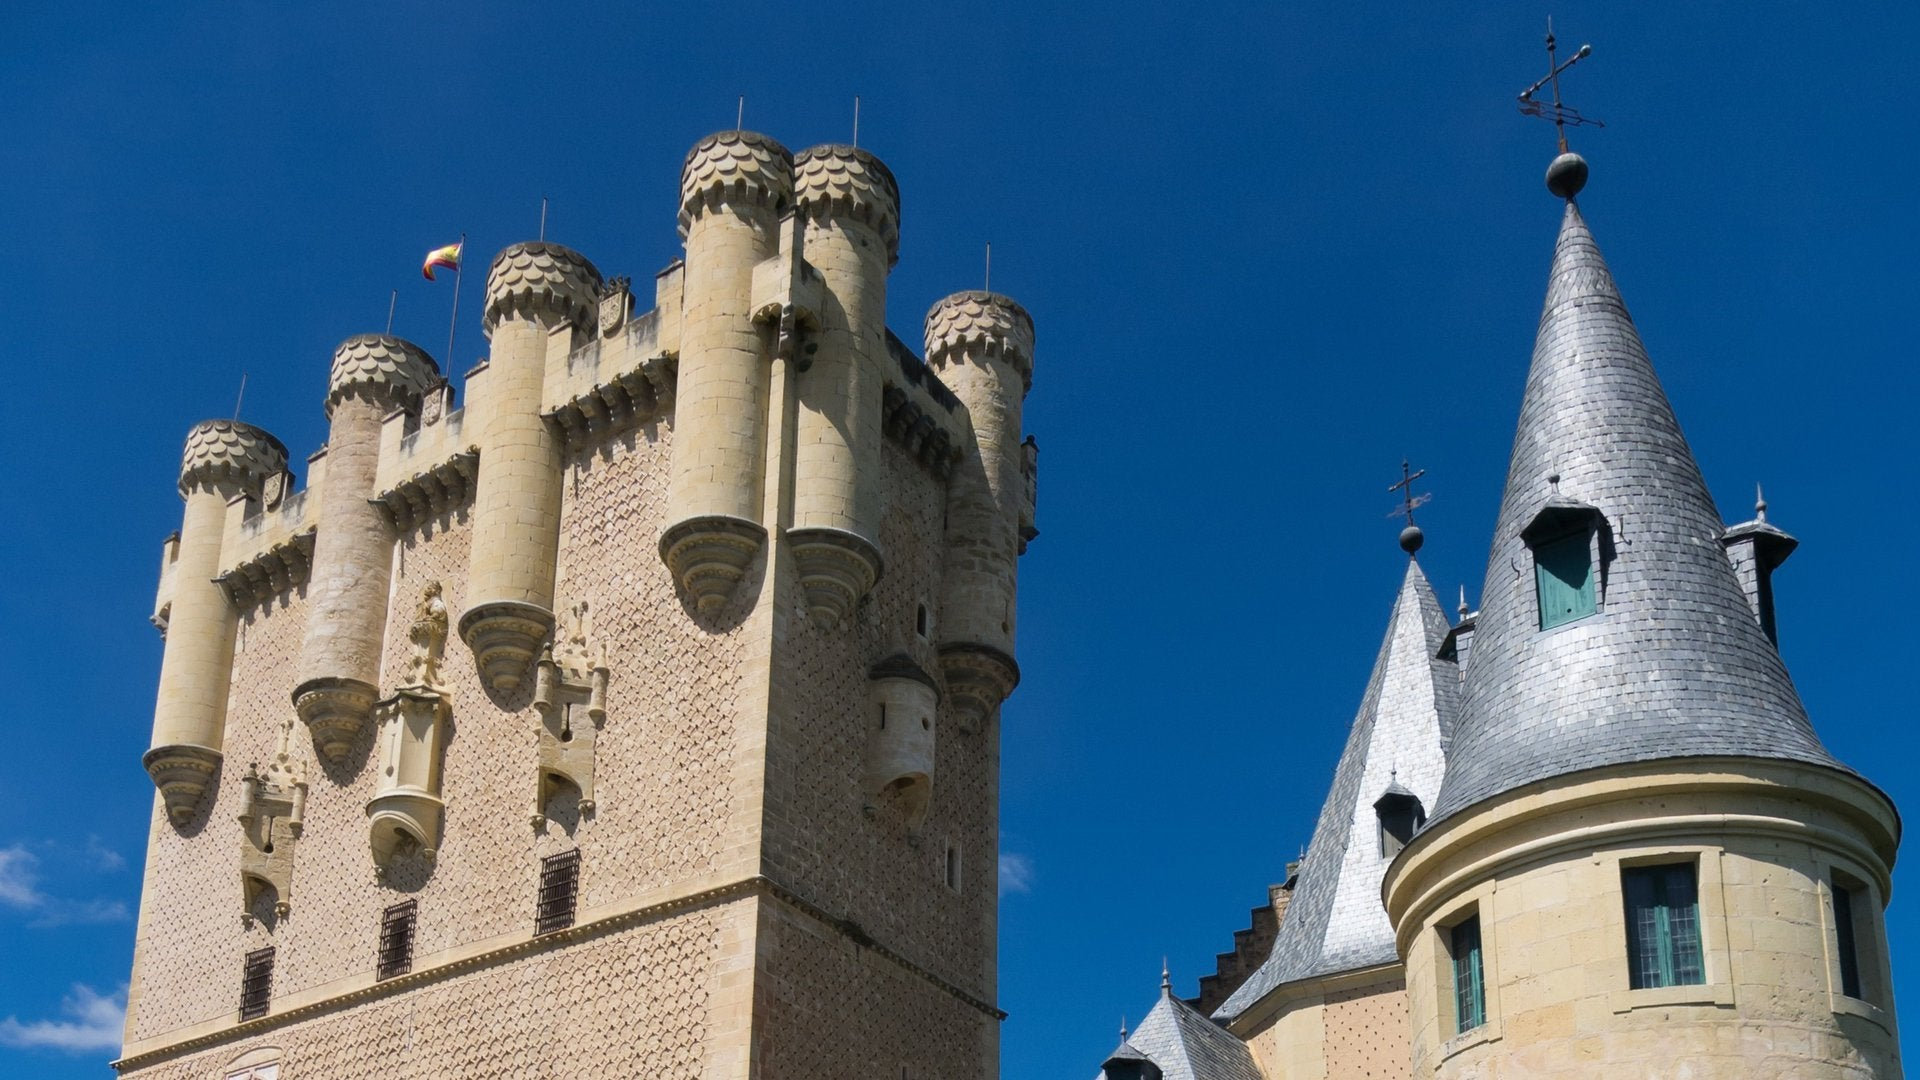 Discoveries Spain: Castles, Cathedrals and Roman Ruins